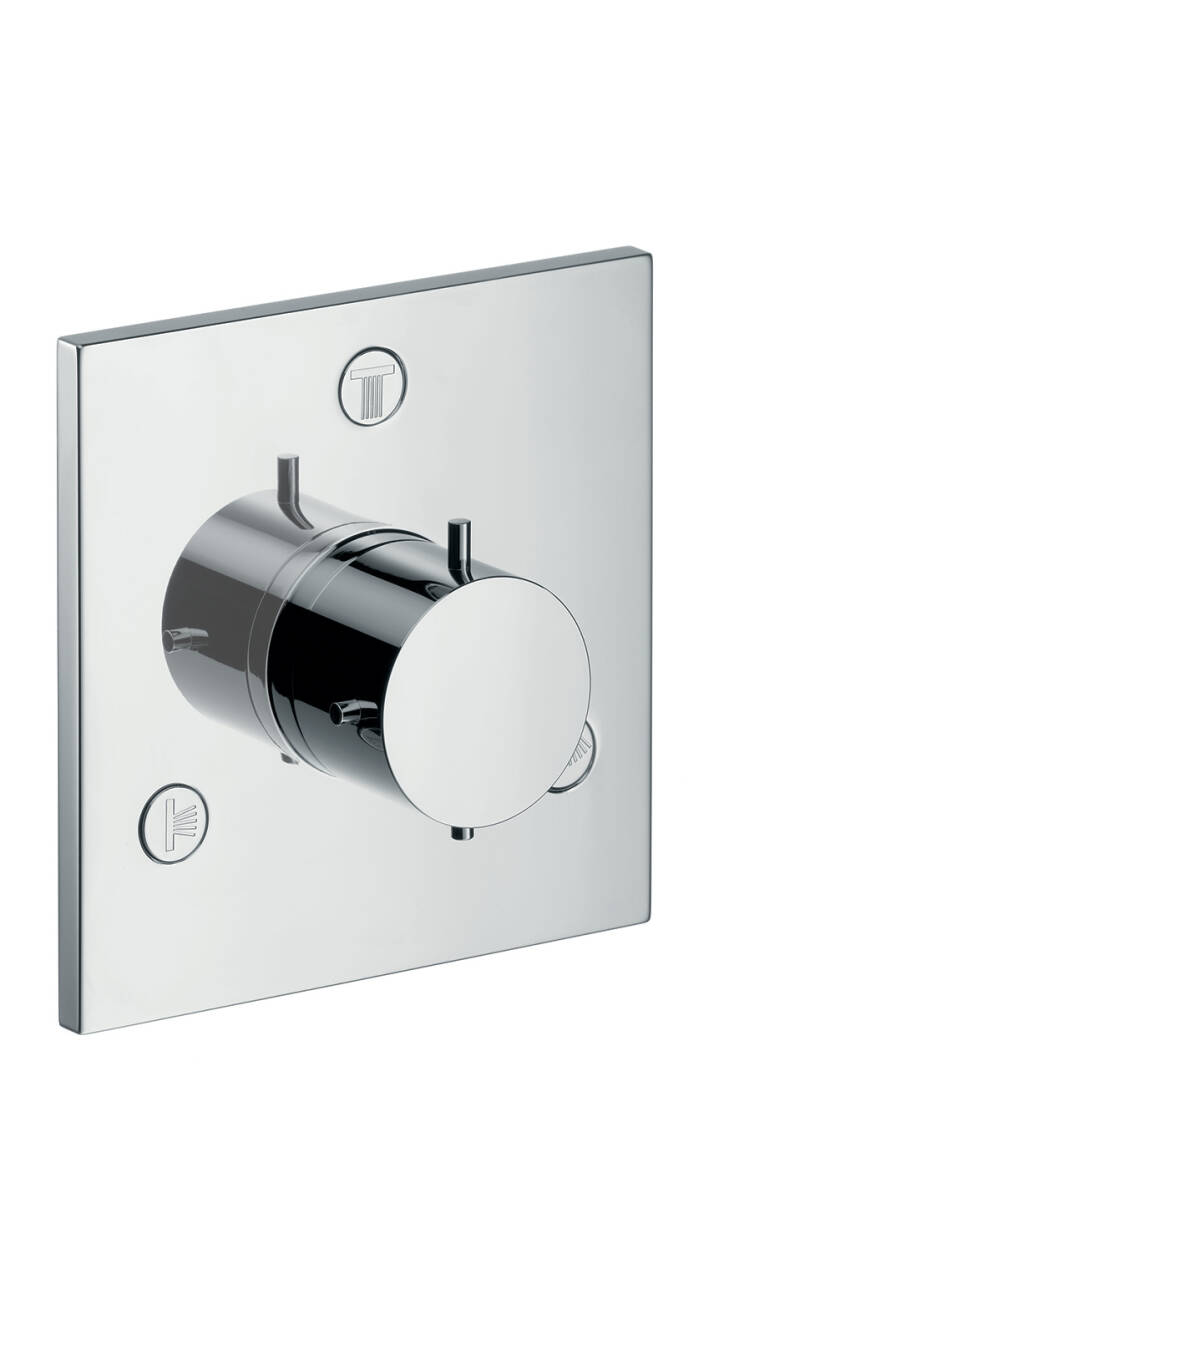 Shut-off/ diverter valve Trio/ Quattro for concealed installation, Brushed Black Chrome, 10934340